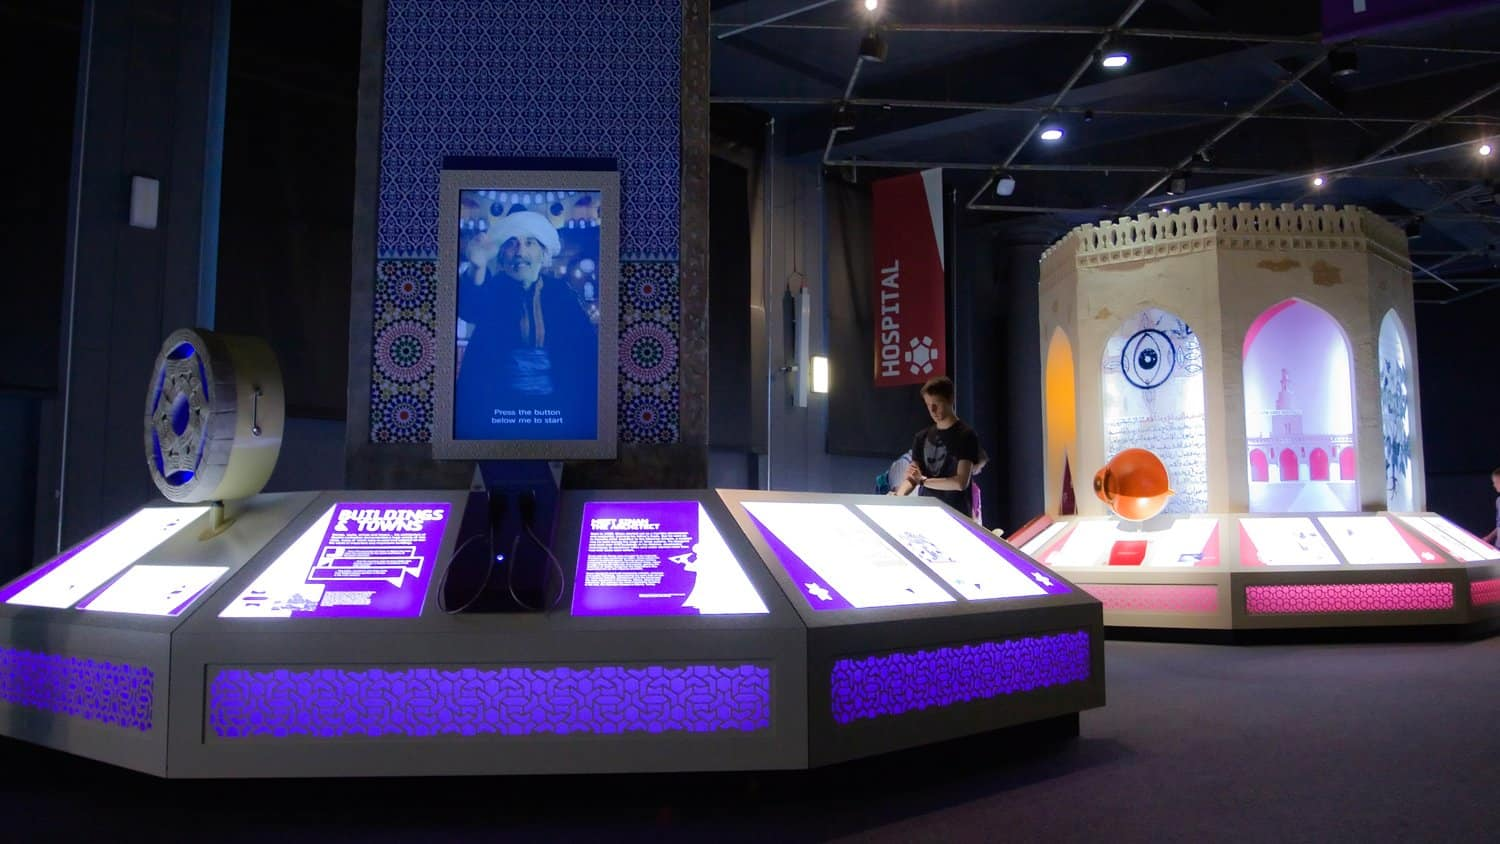 Audio and Visual Interactives at 1001 Inventions Exhibit using Bespoke Handheld Audio Handsets